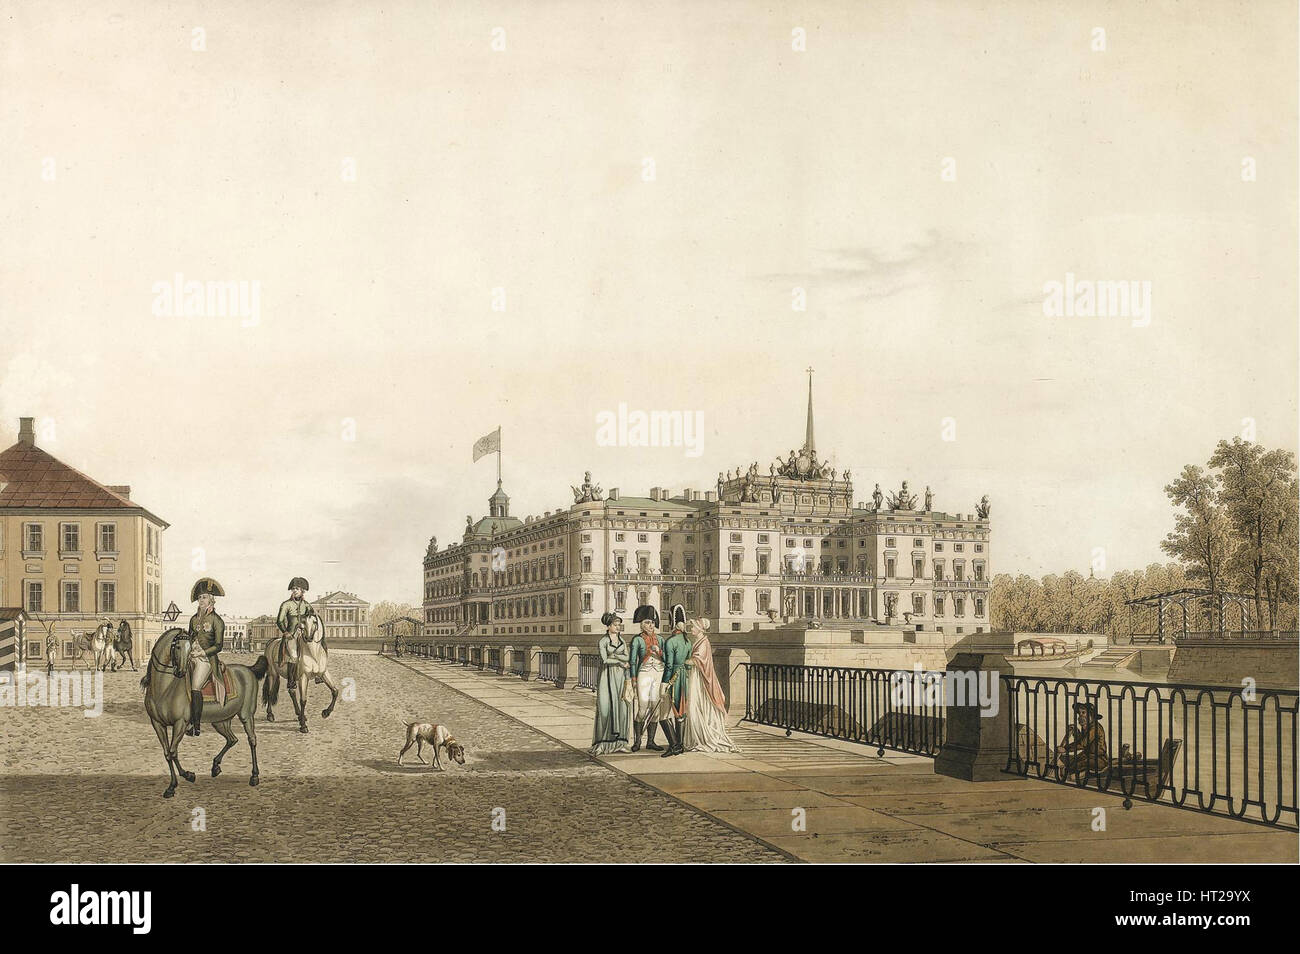 View of the Mikhailovsky Palace, 1804. Artist: Lory, Gabriel Ludwig, the Elder (1763-1840) - Stock Image